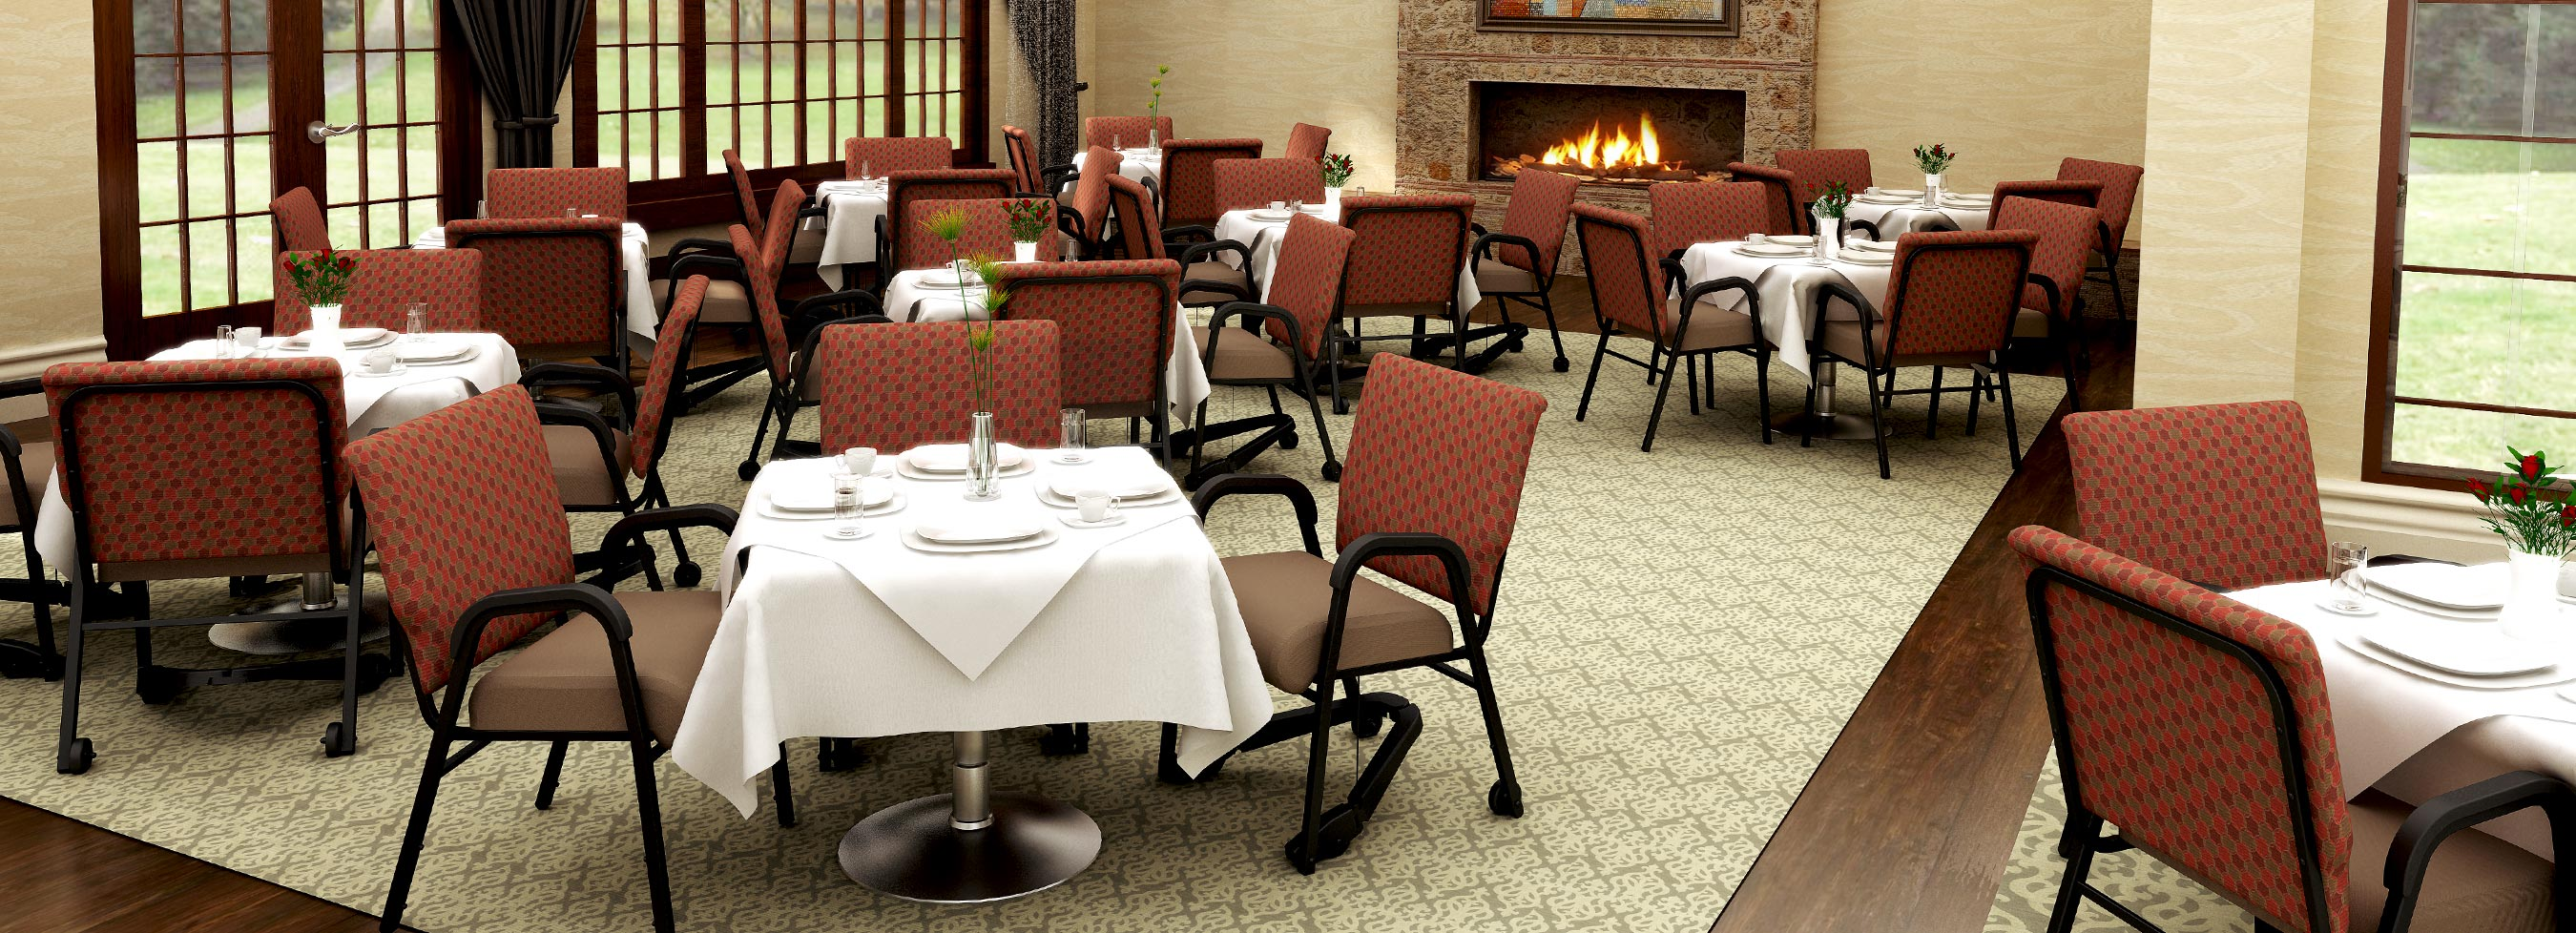 4 products that illustrate innovation at comfortek for Senior living dining room